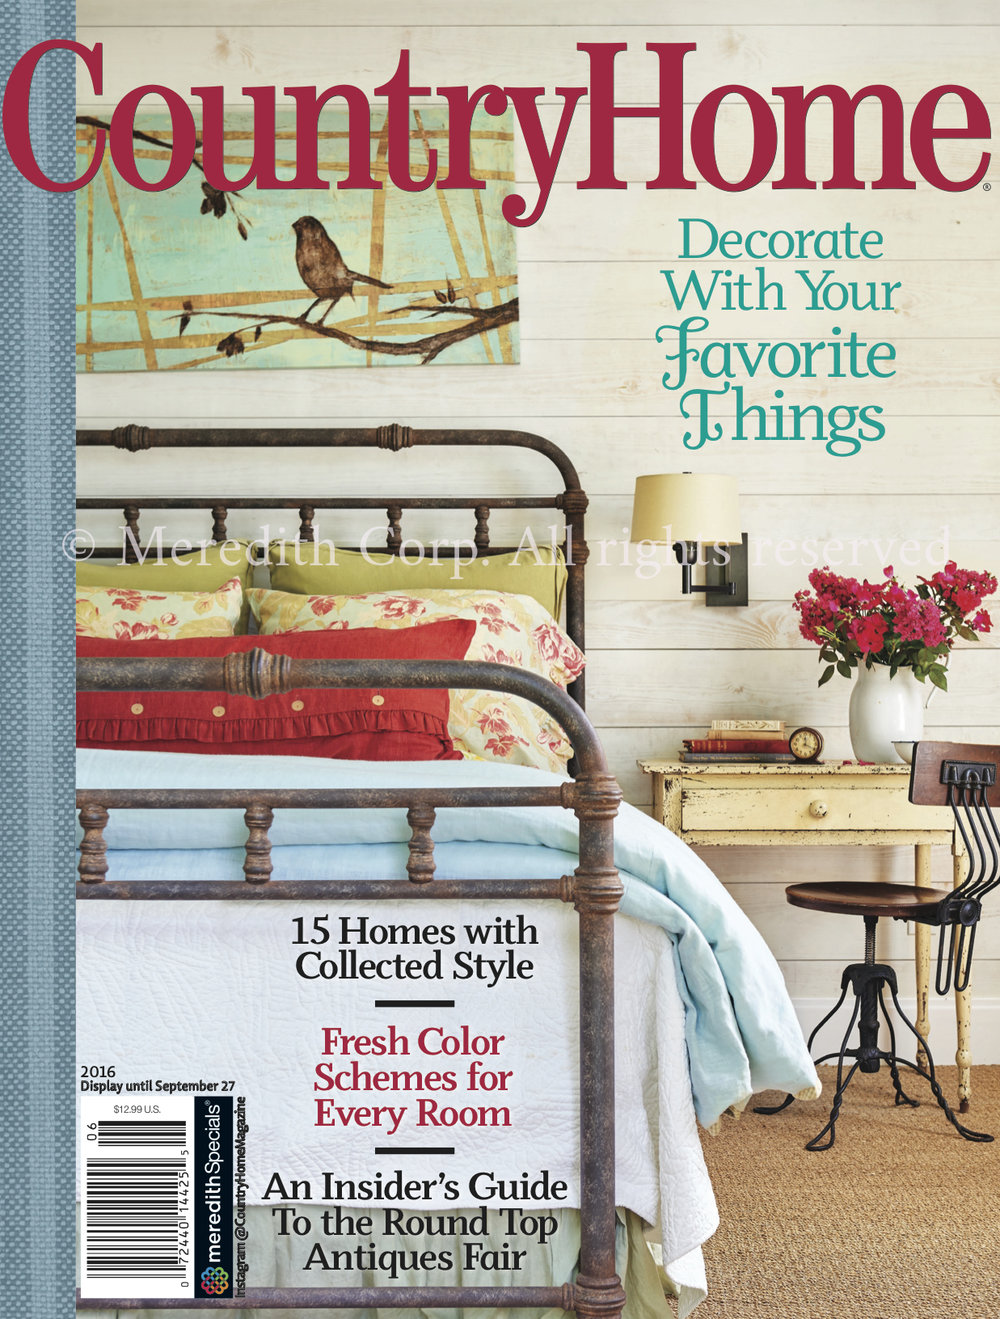 Country Home Cover 2017.jpg